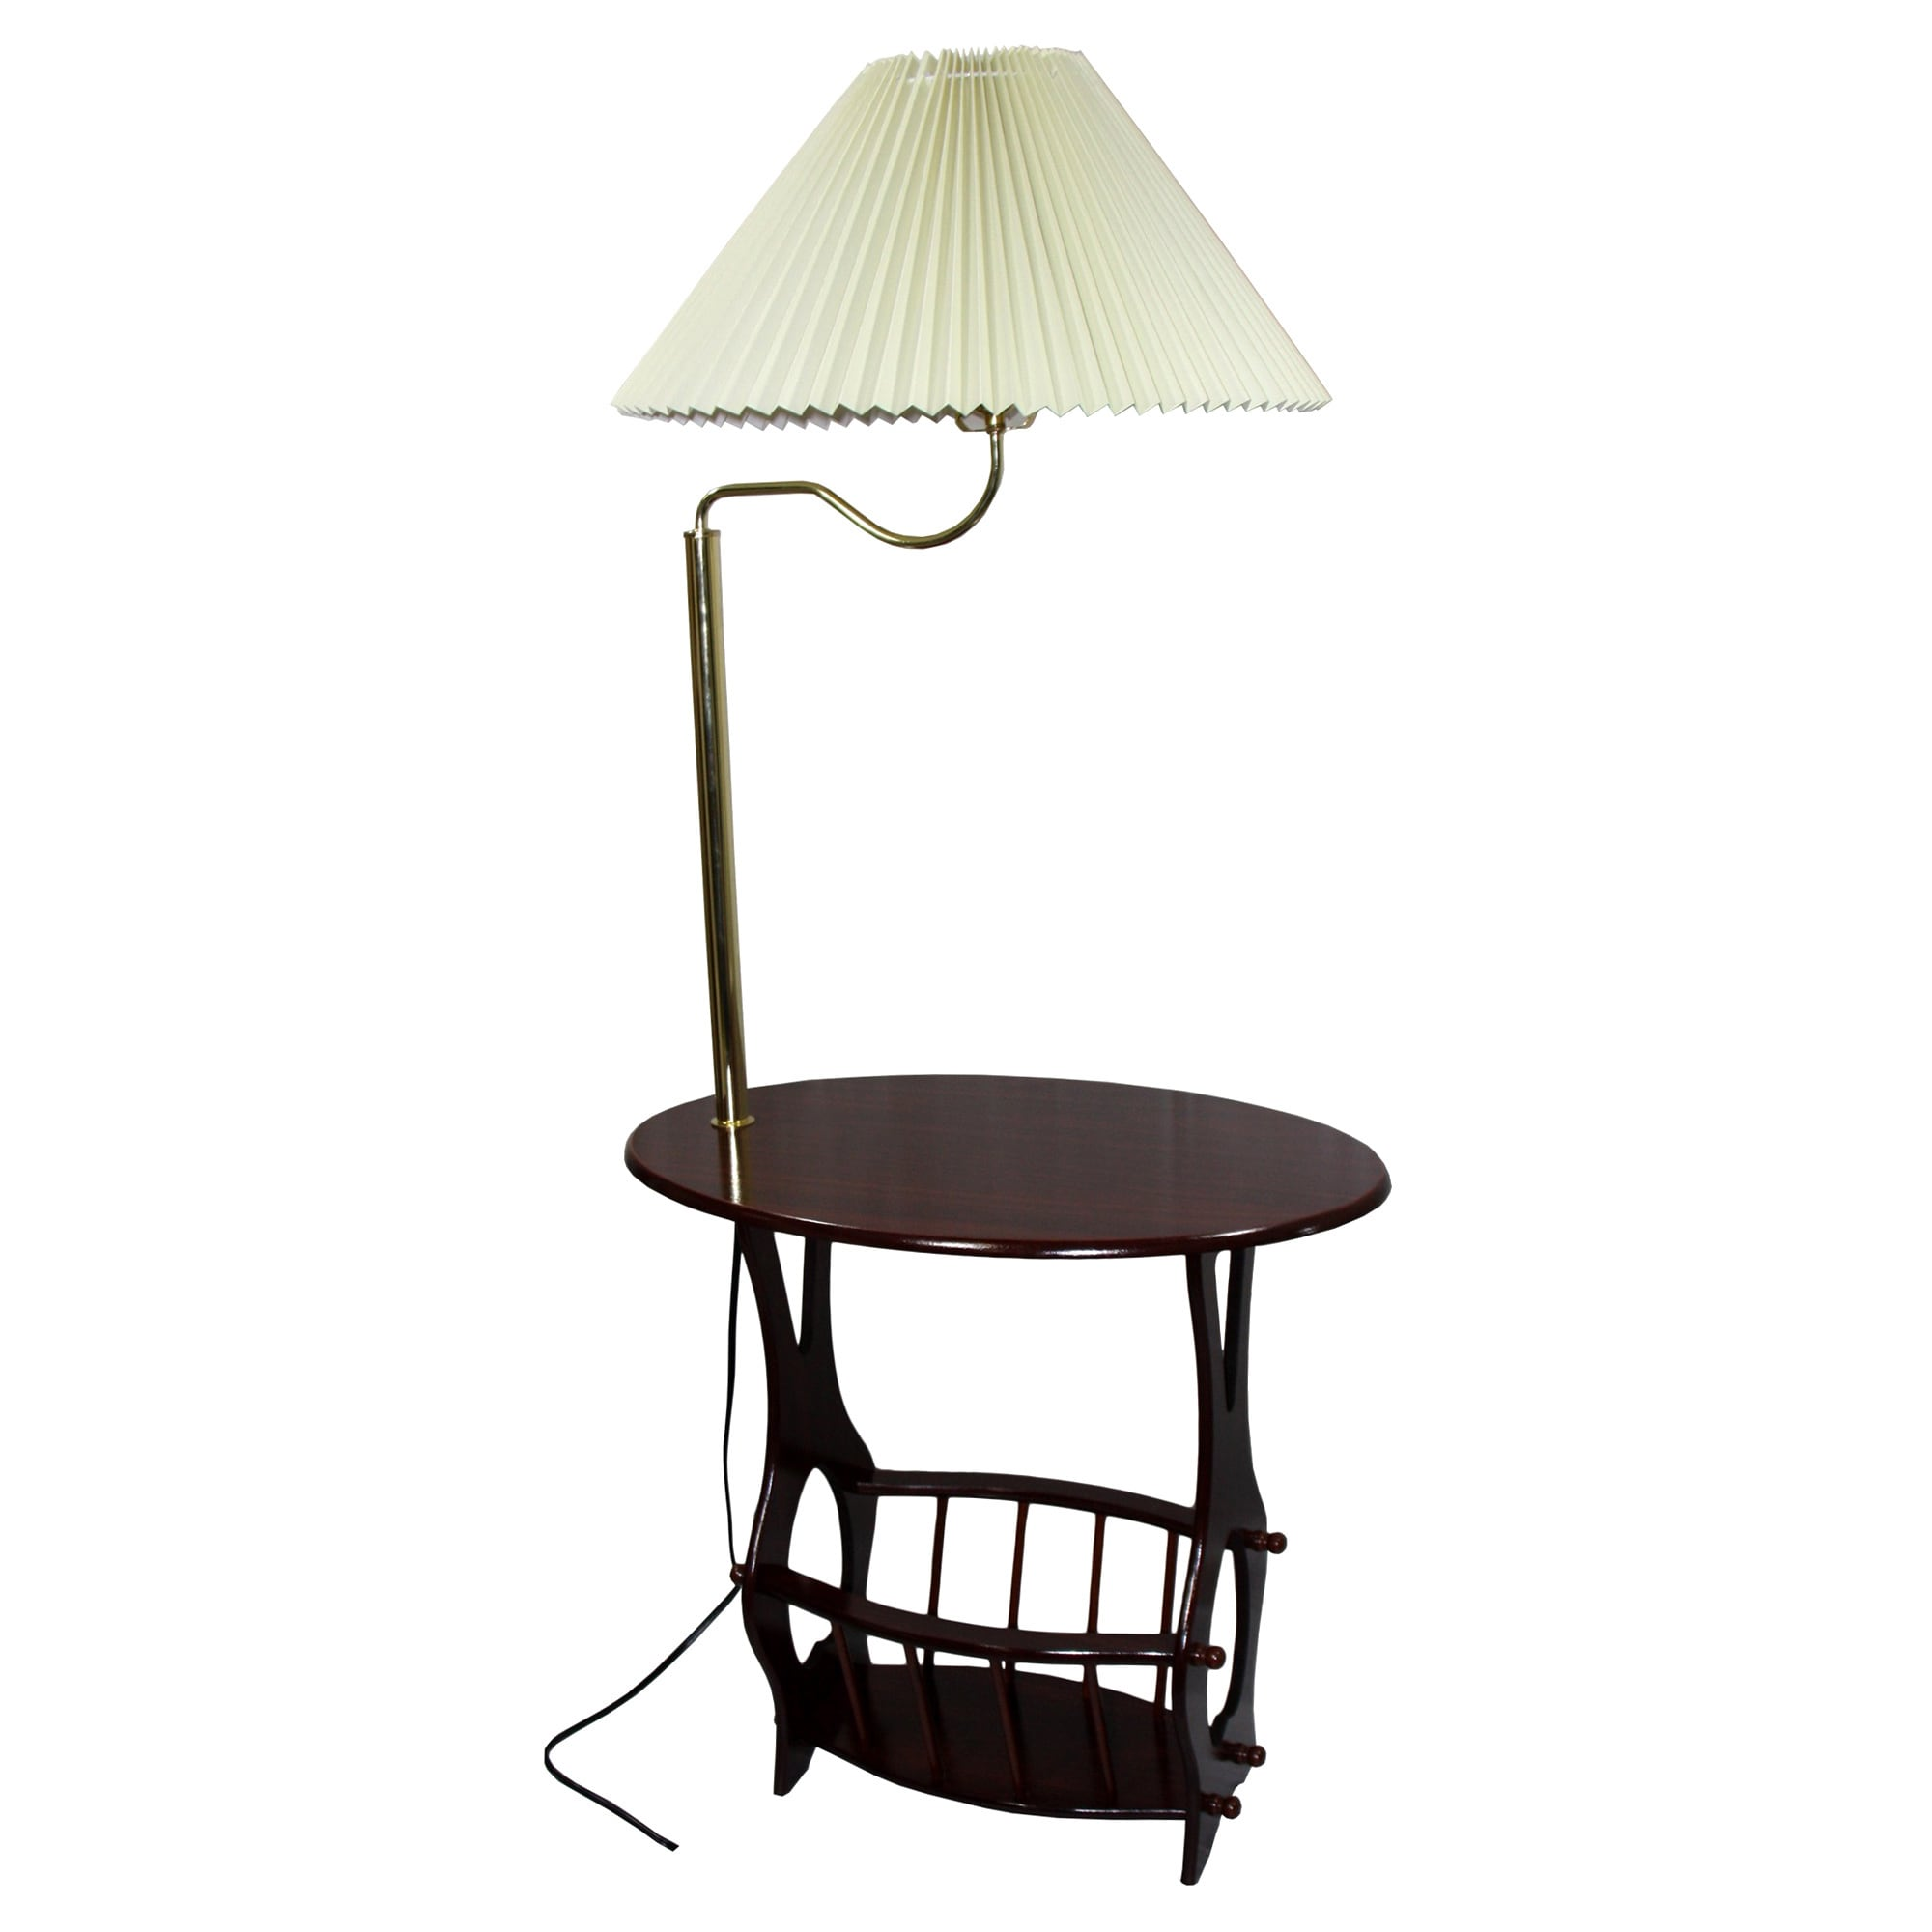 ORE International Brass Floor Lamp End Table with Magazin...